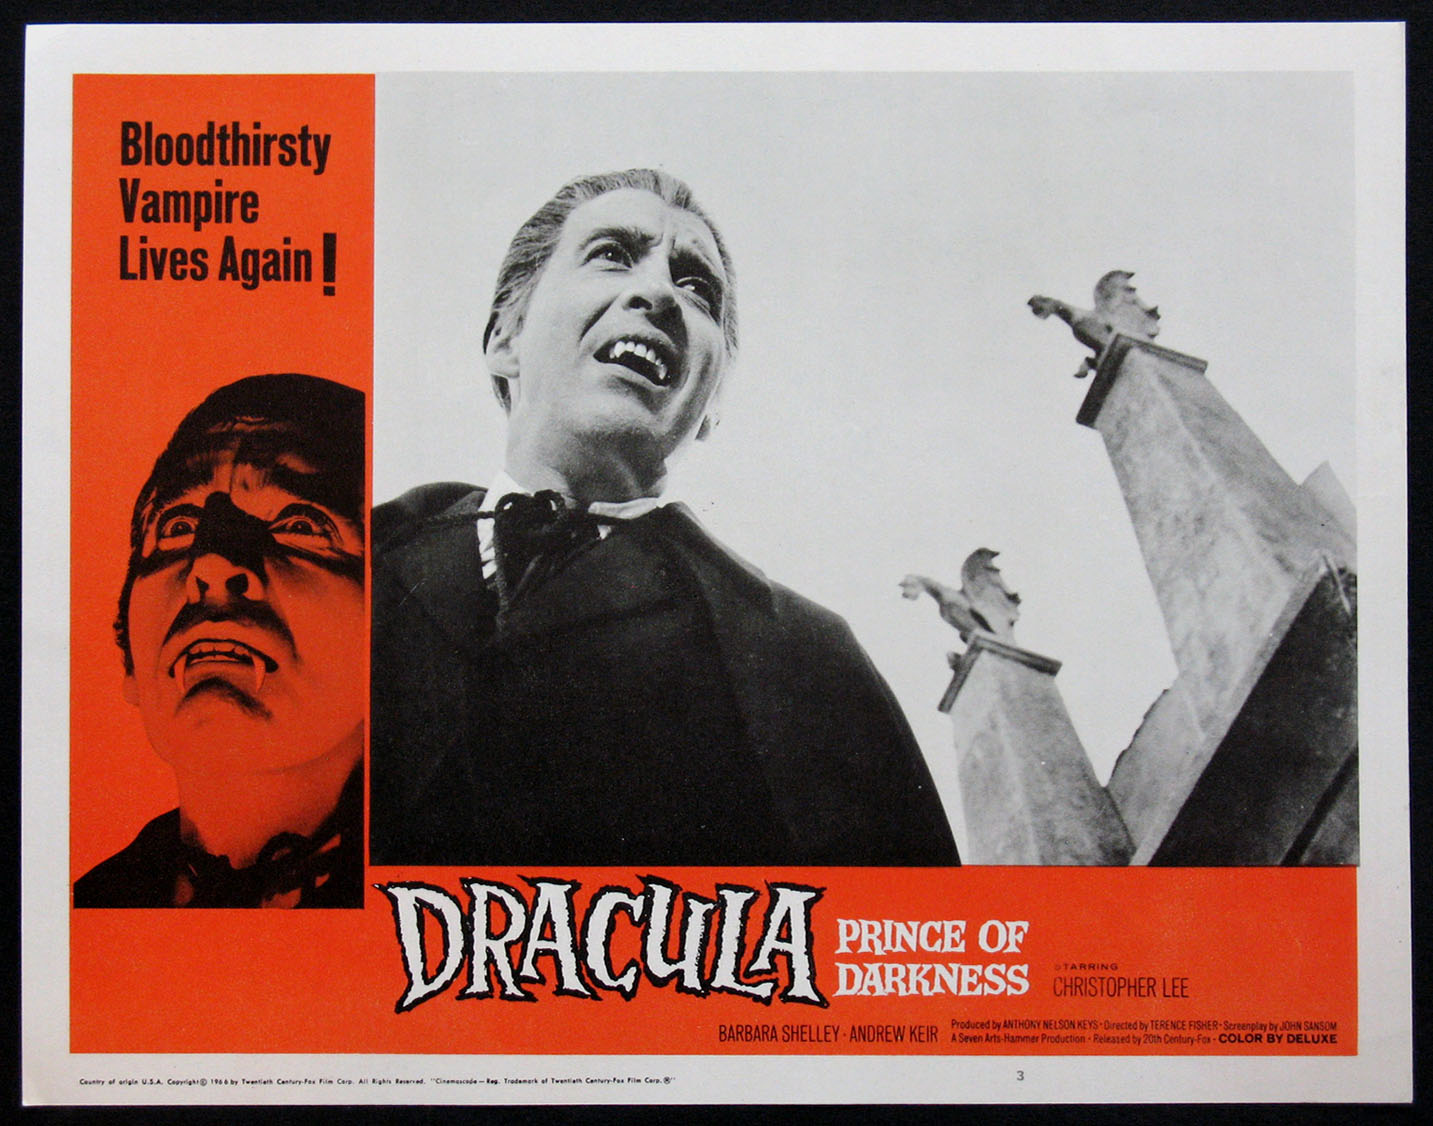 DRACULA PRINCE OF DARKNESS (Dracula, Prince of Darkness) @ FilmPosters.com